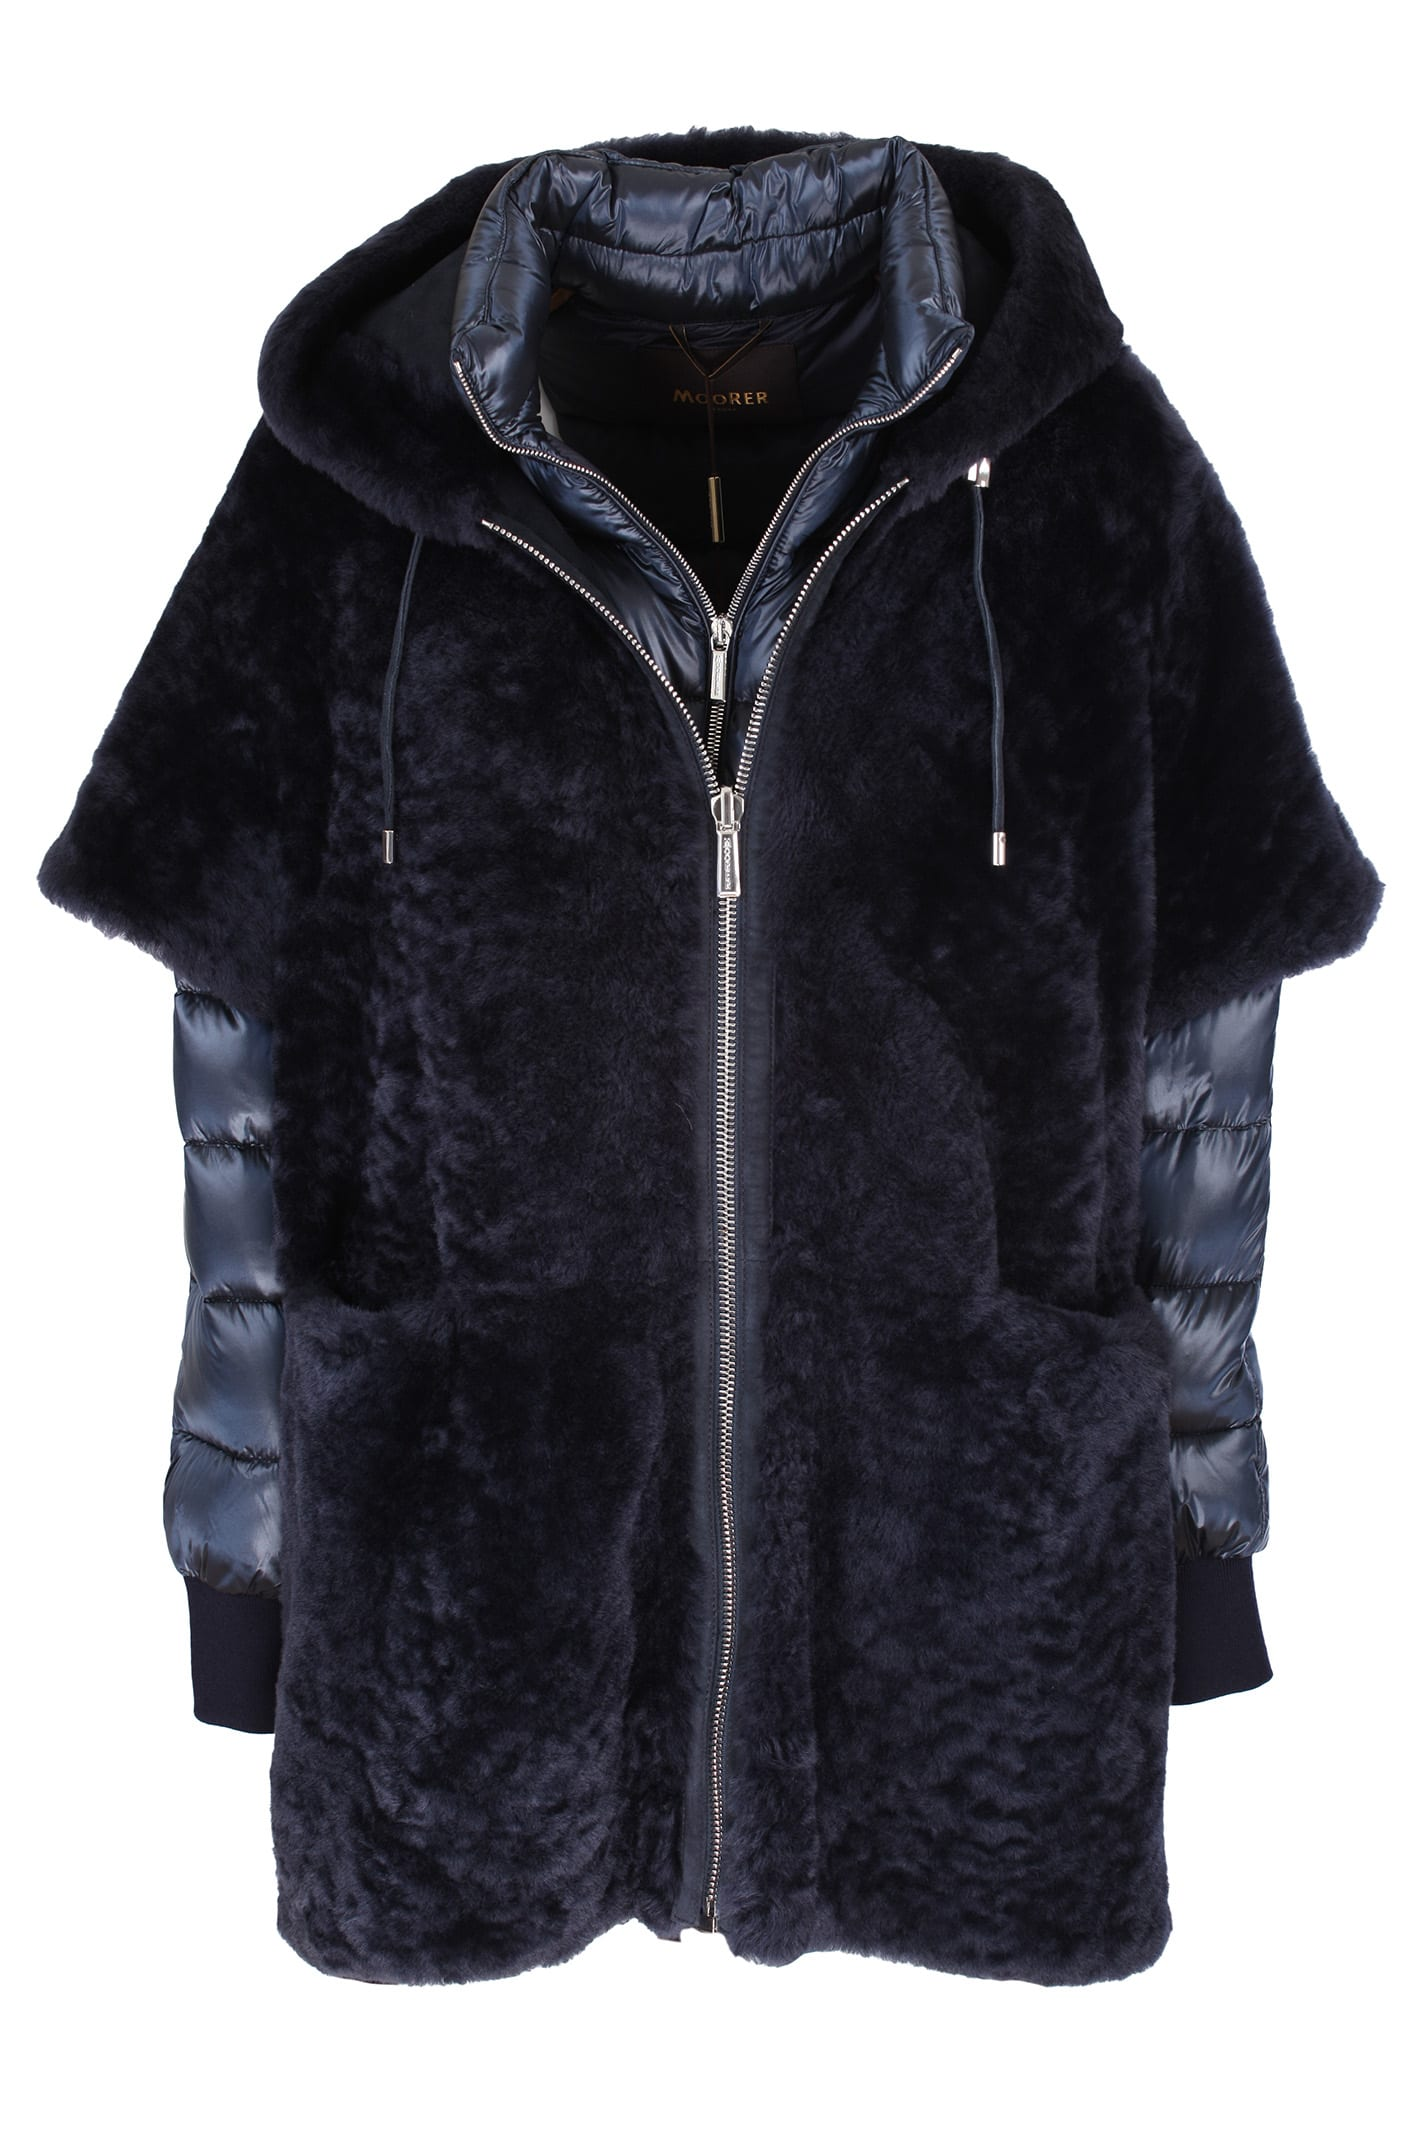 MooRER reversible sheepskin coat